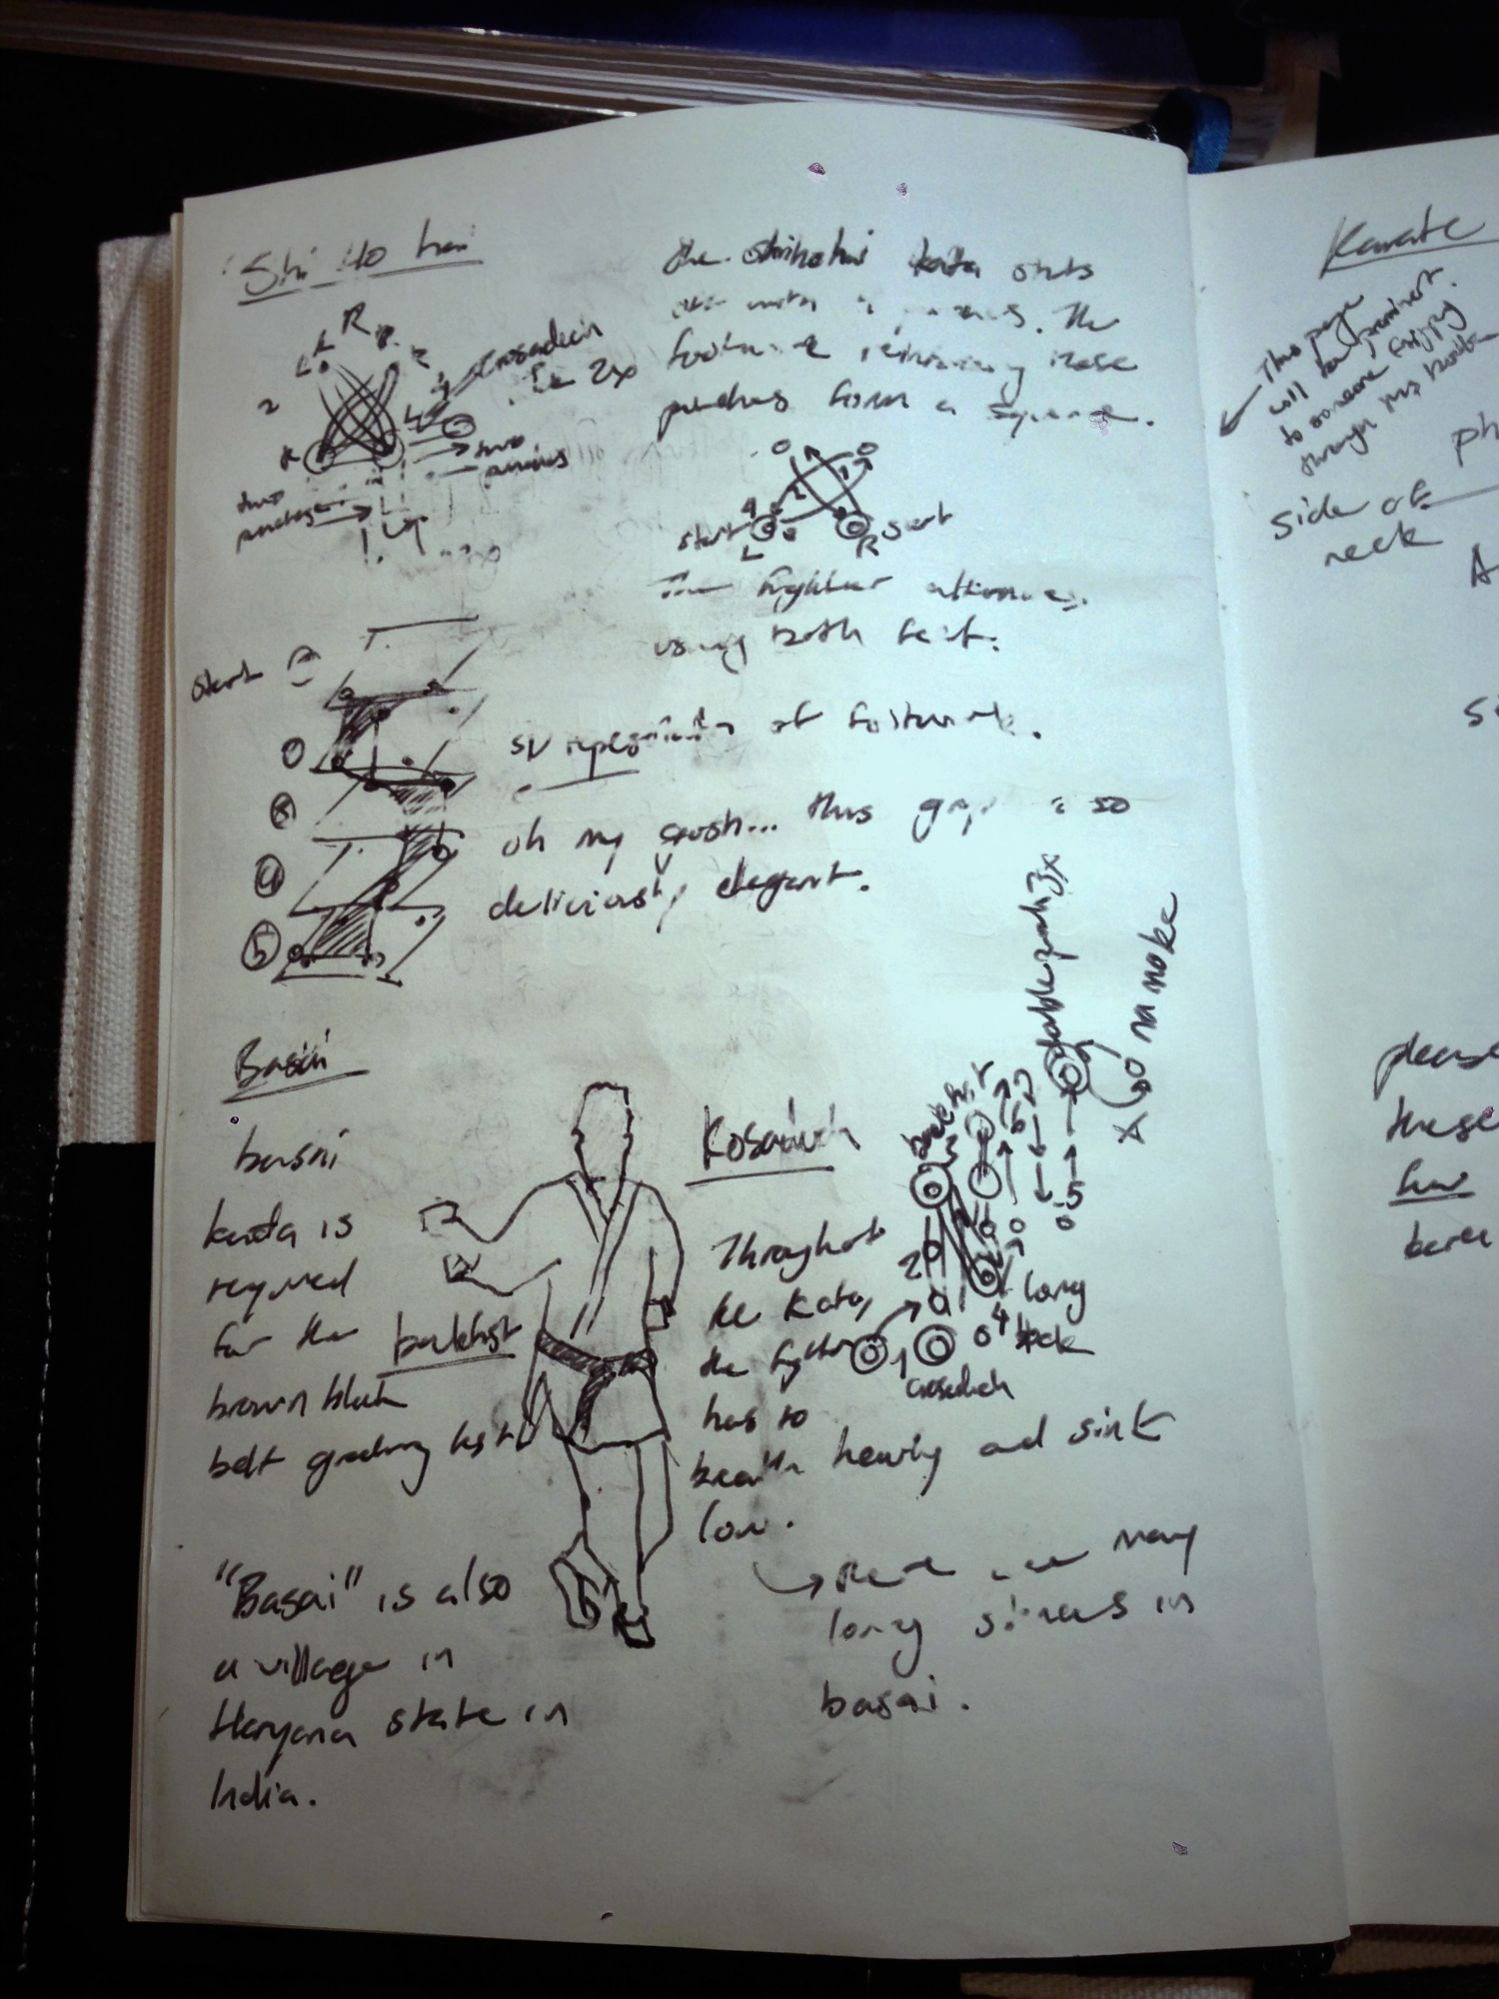 Julian's notebook